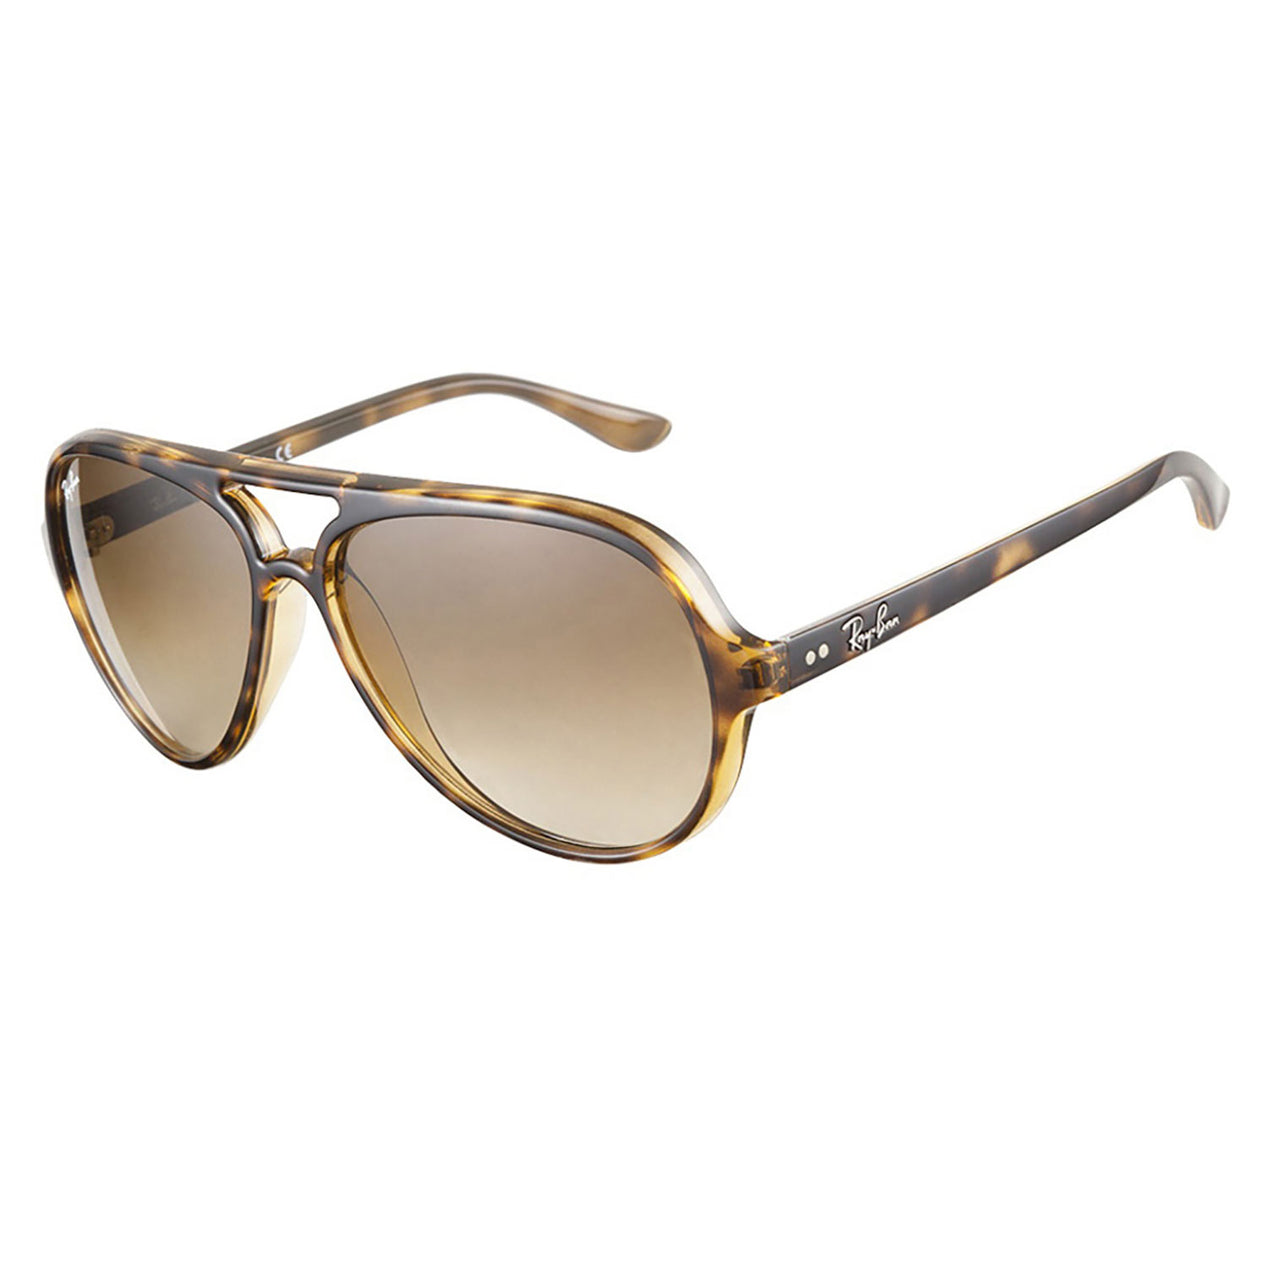 143af5f0e629ae ... spain ray ban cats 5000 classic tortoise frame light brown gradient  70d9c 9422d ...